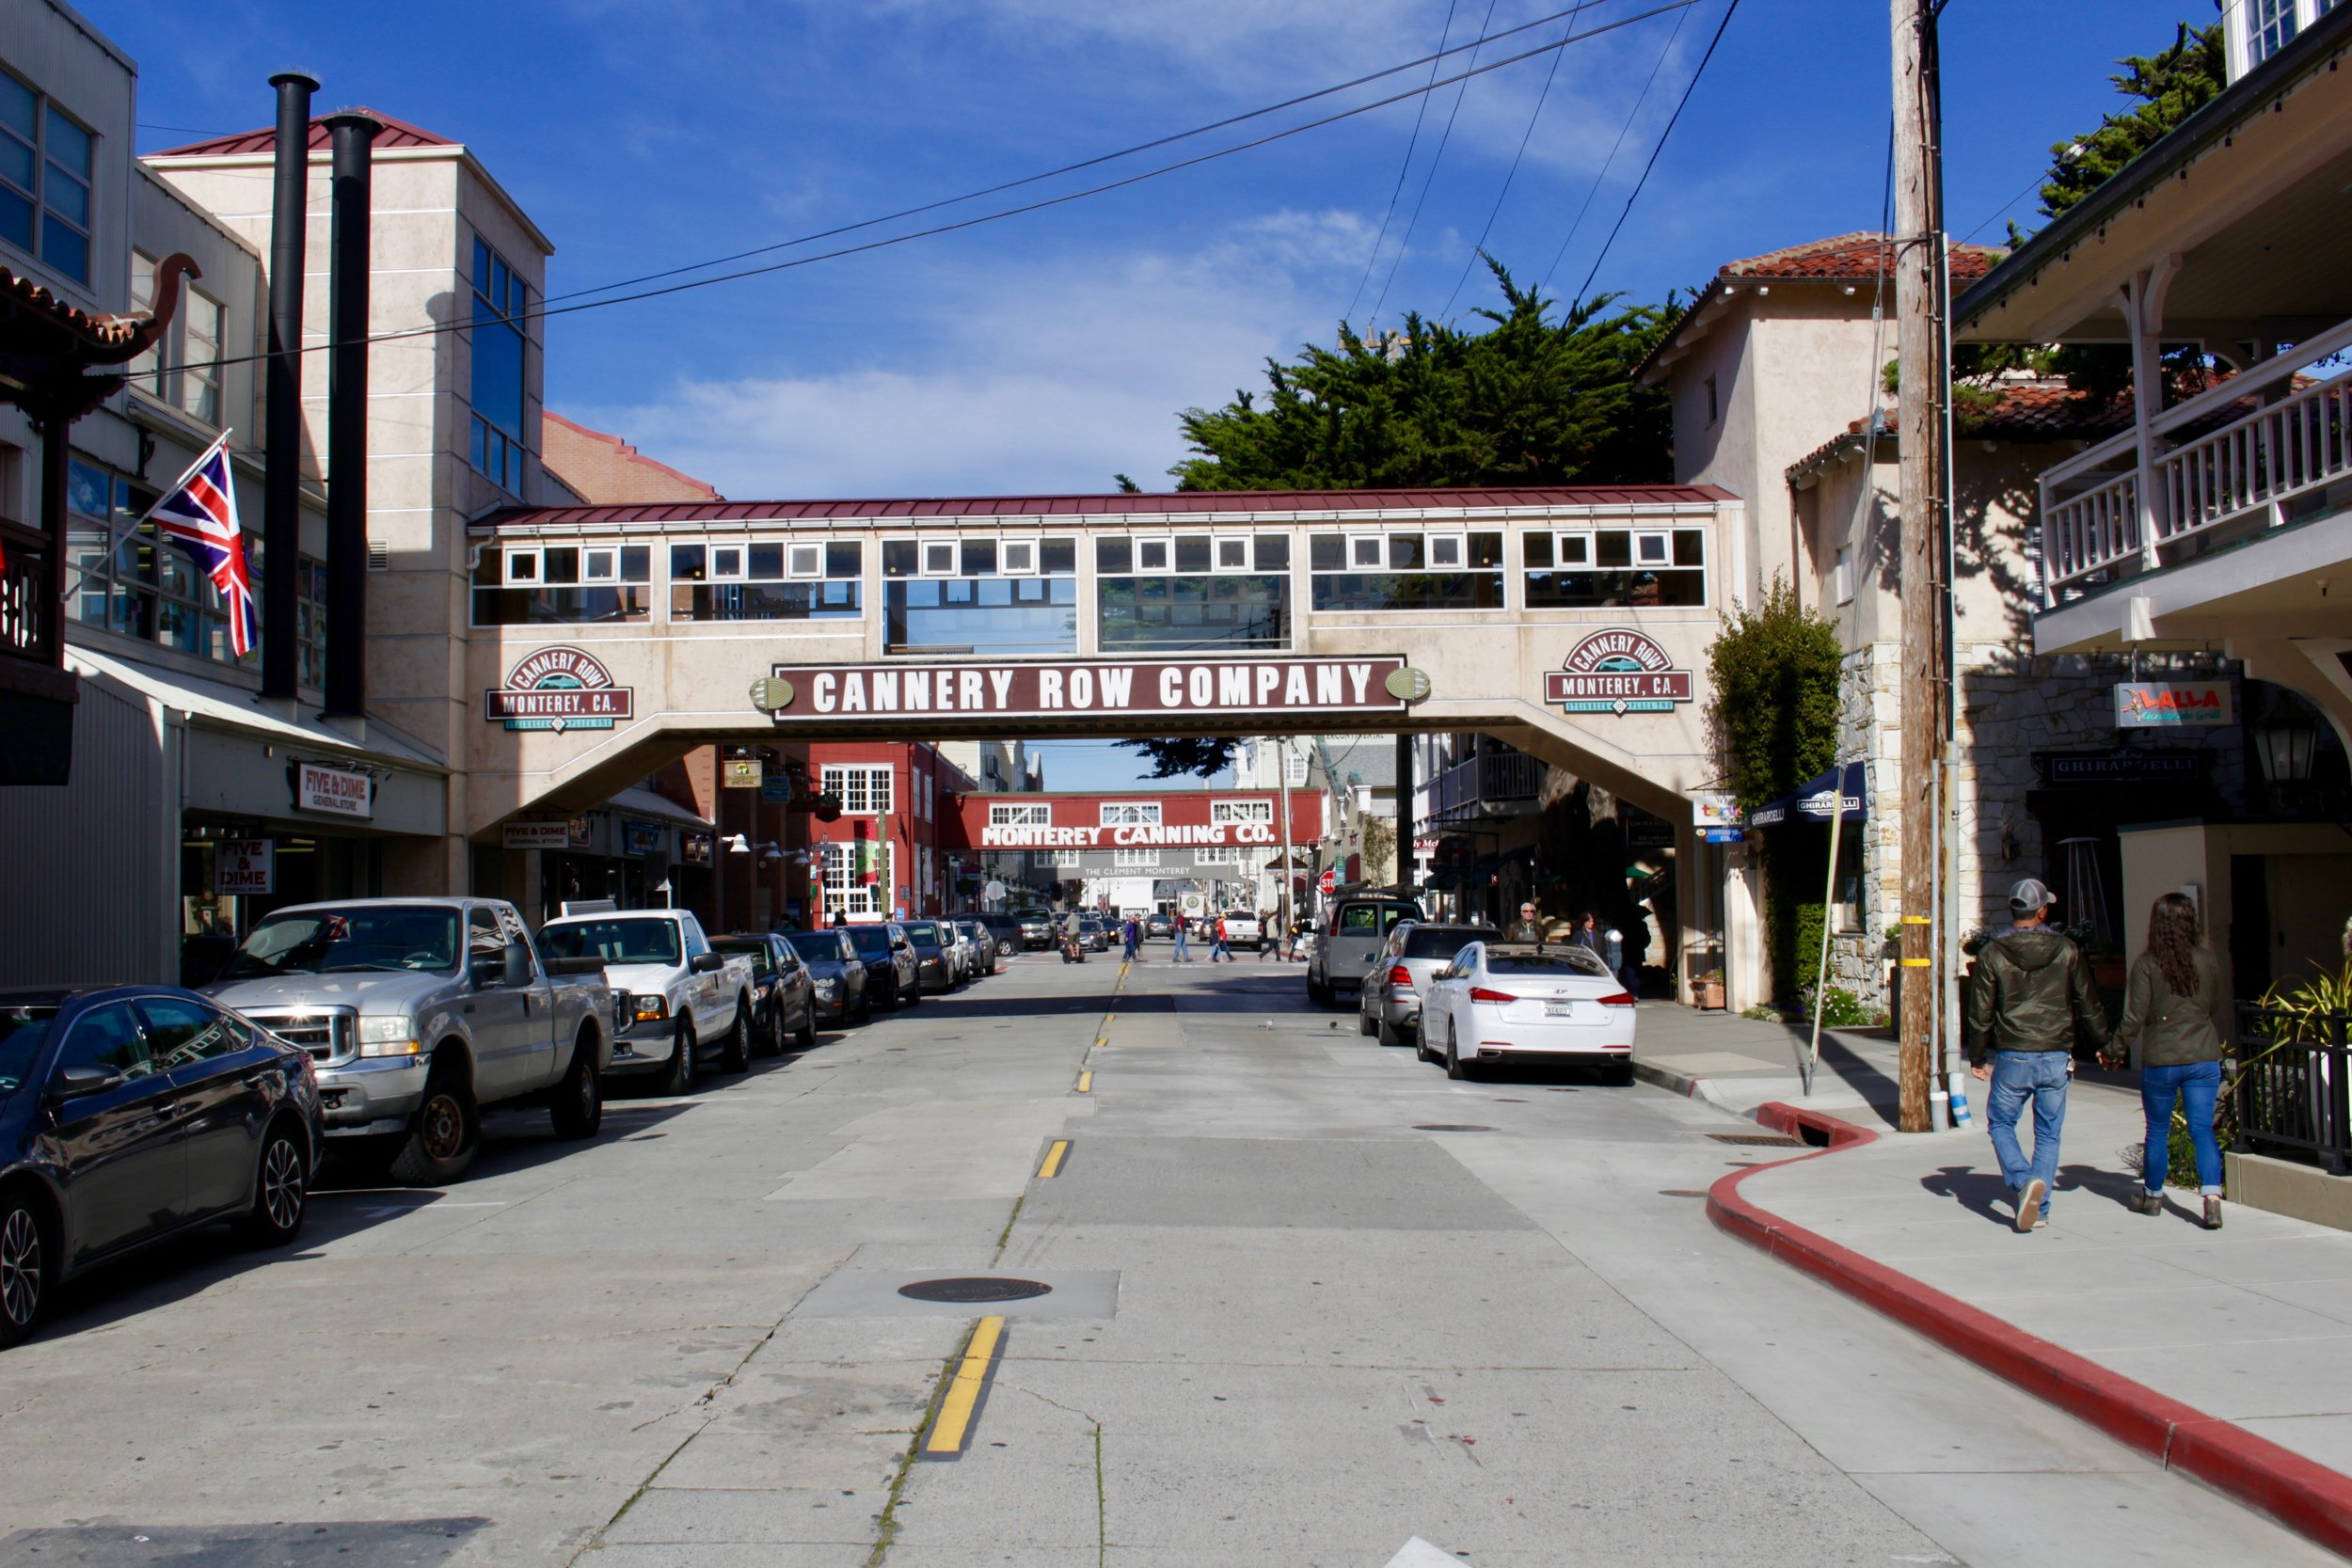 Strolling Cannery Row. Fun fact: It was called Ocean View Avenue until it was officially named Cannery Row in 1958.